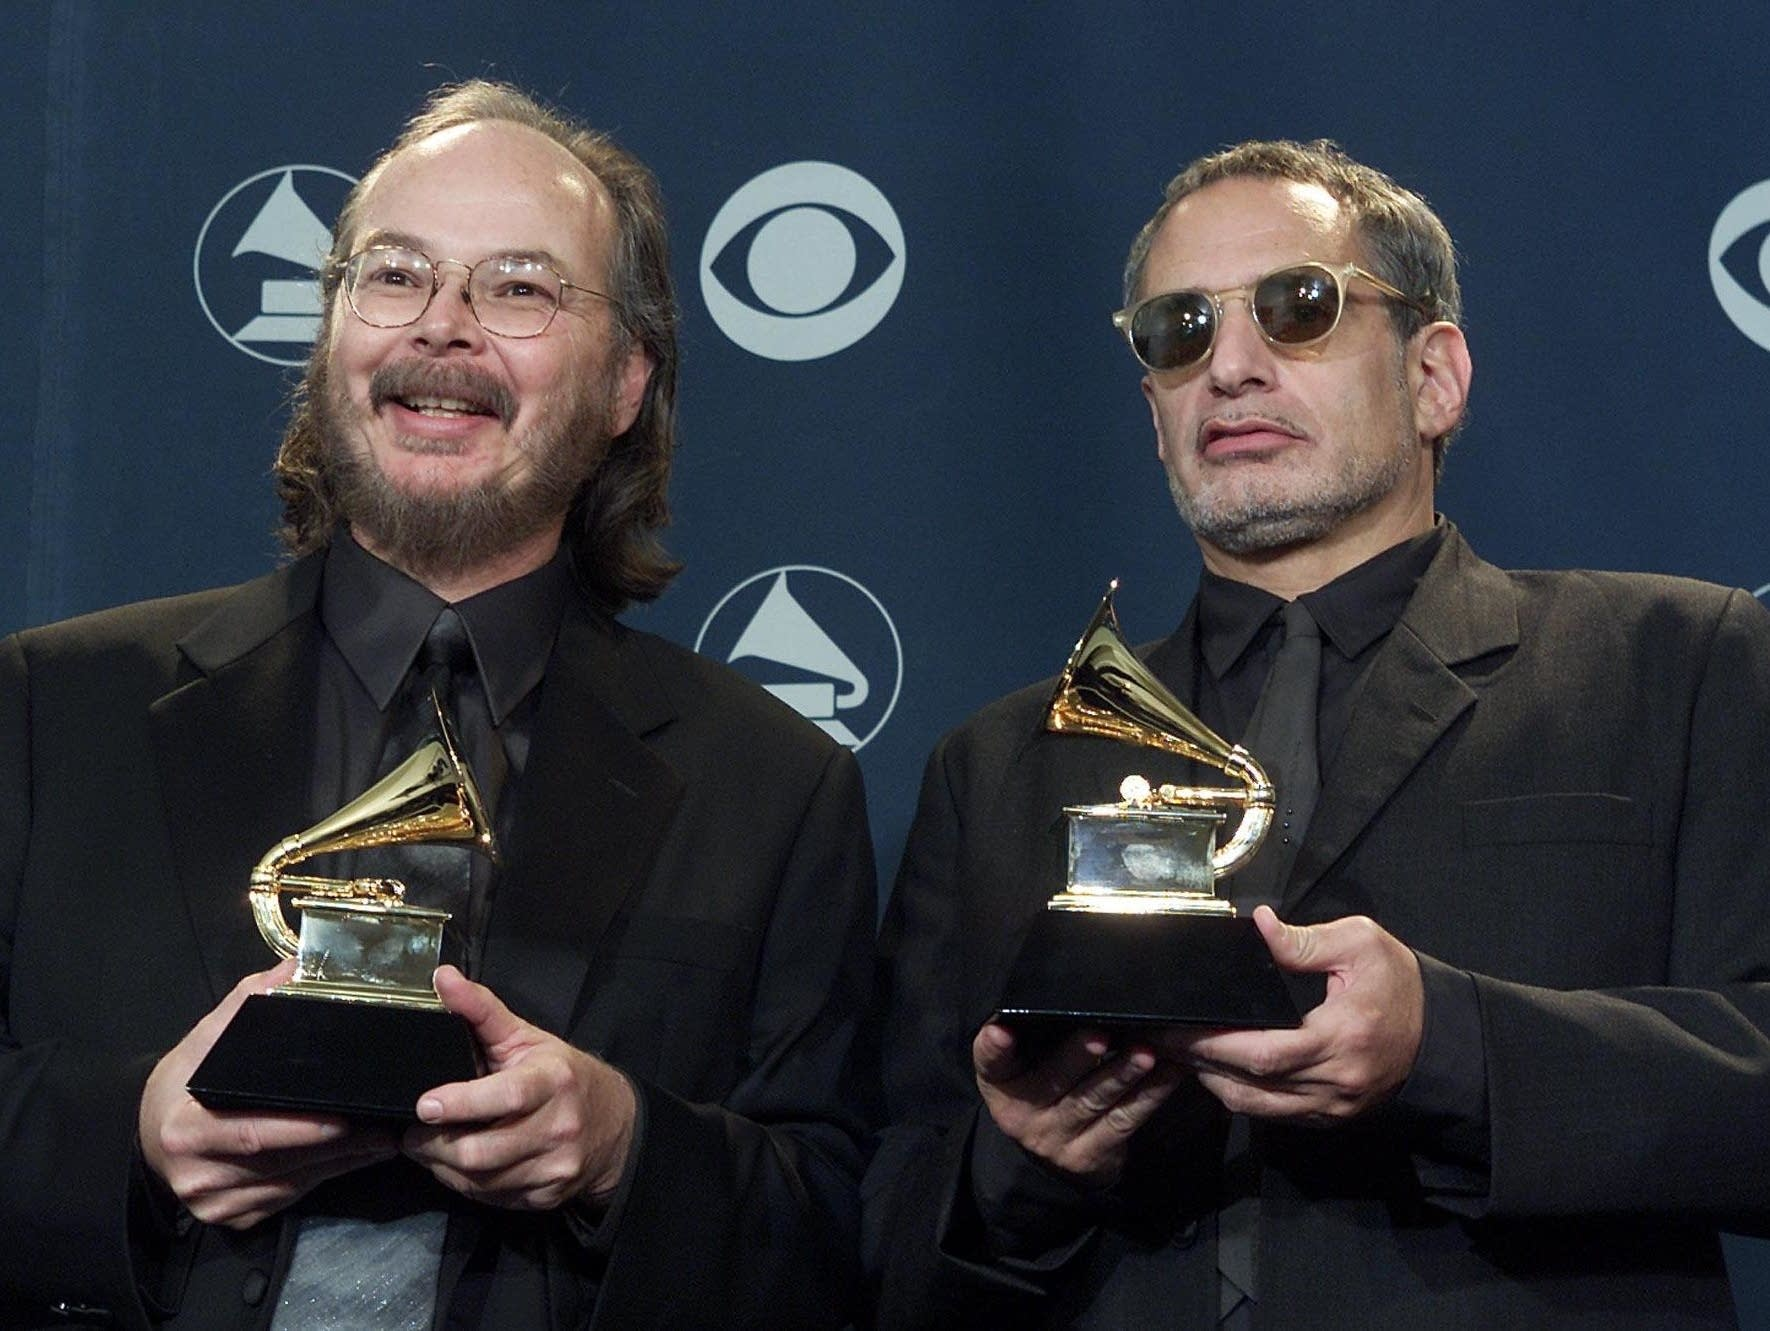 Walter Becker (l) and Donald Fagen of Steely Dan in 2001.